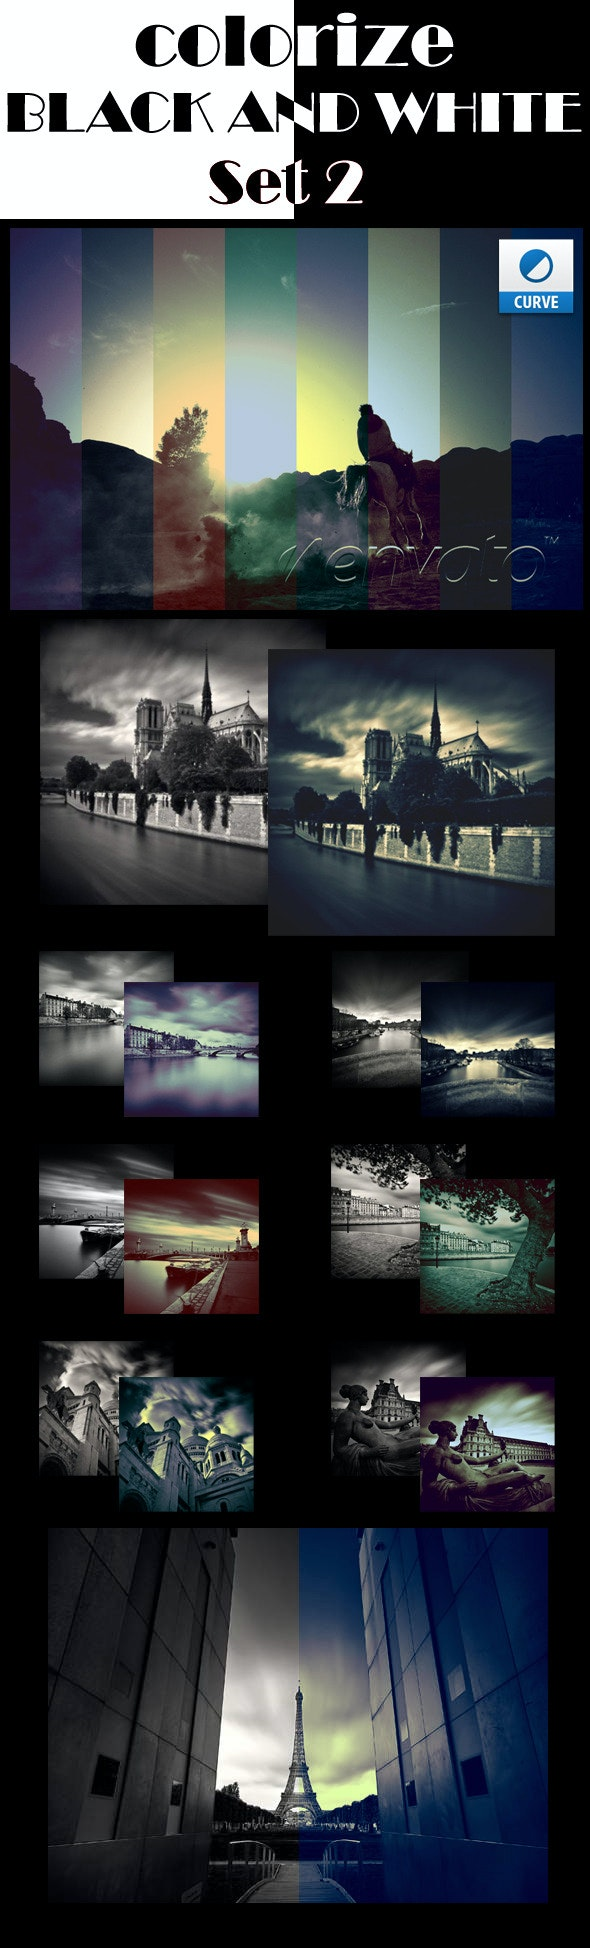 Colorize Black and White Photographies Set 2 - Photoshop Add-ons